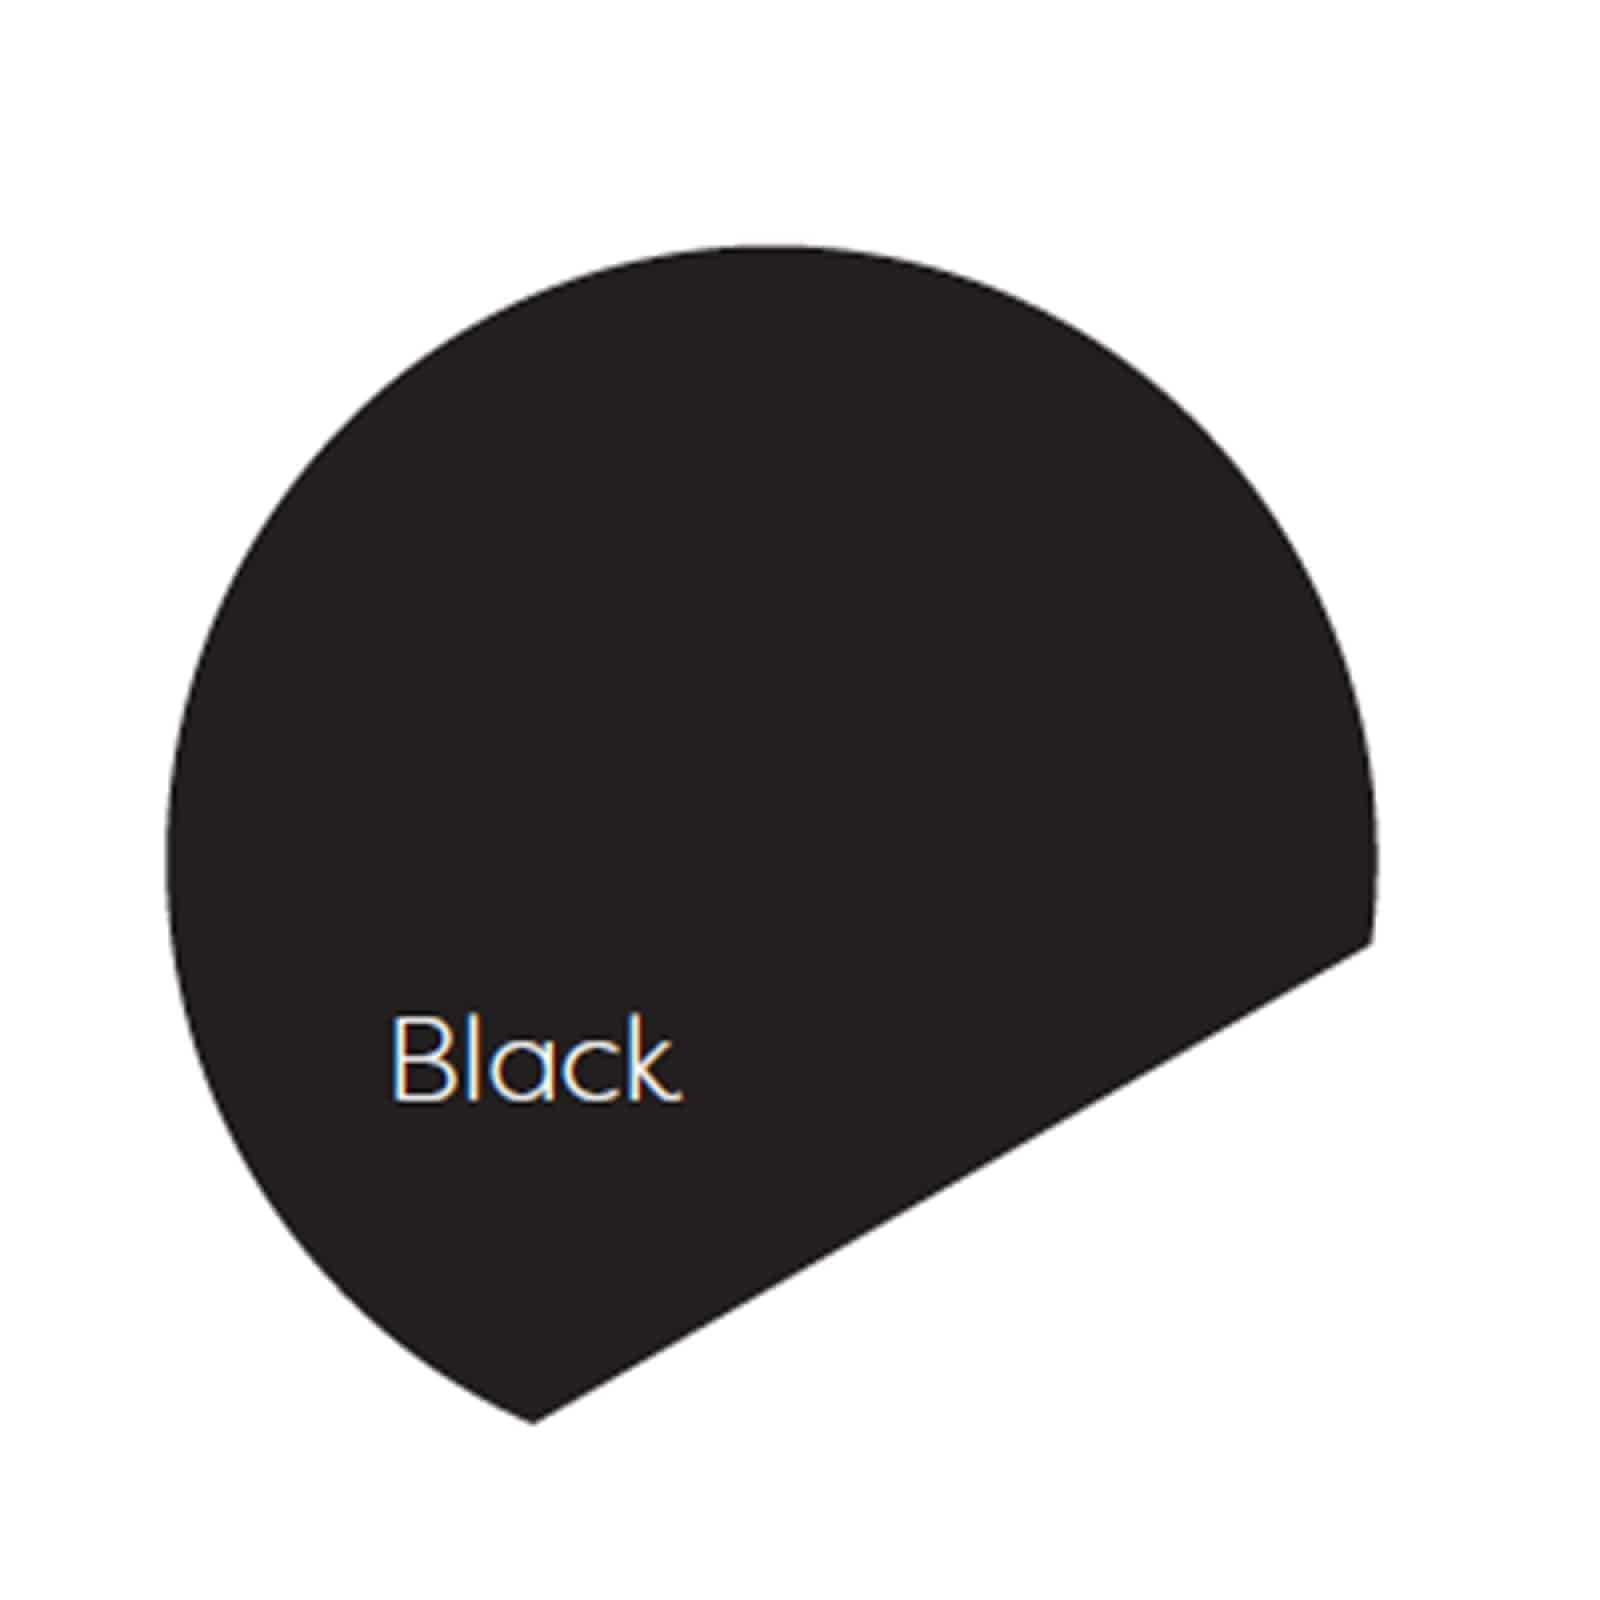 black color swatch